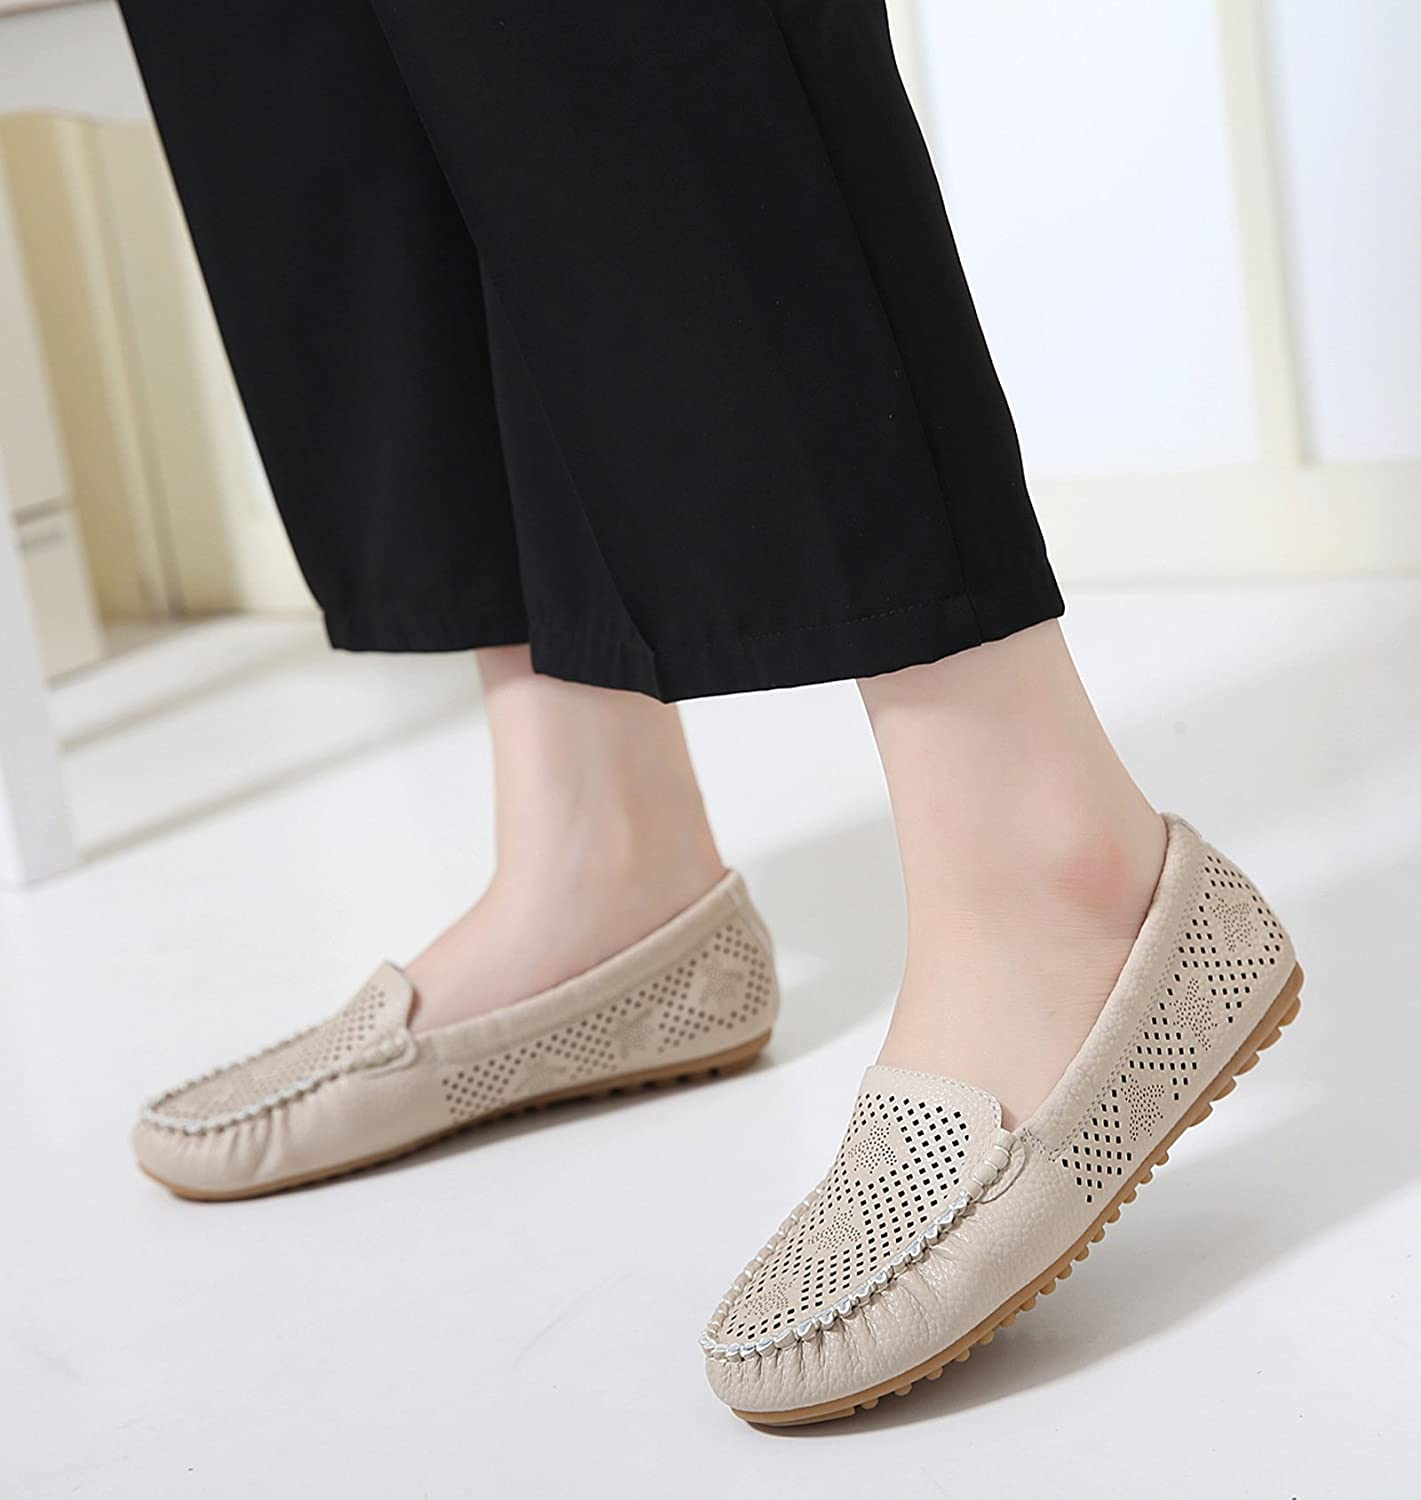 Jiu du Womens Fashion Round Toe Flats Comfortable Breathable Summer Loafer Shoes